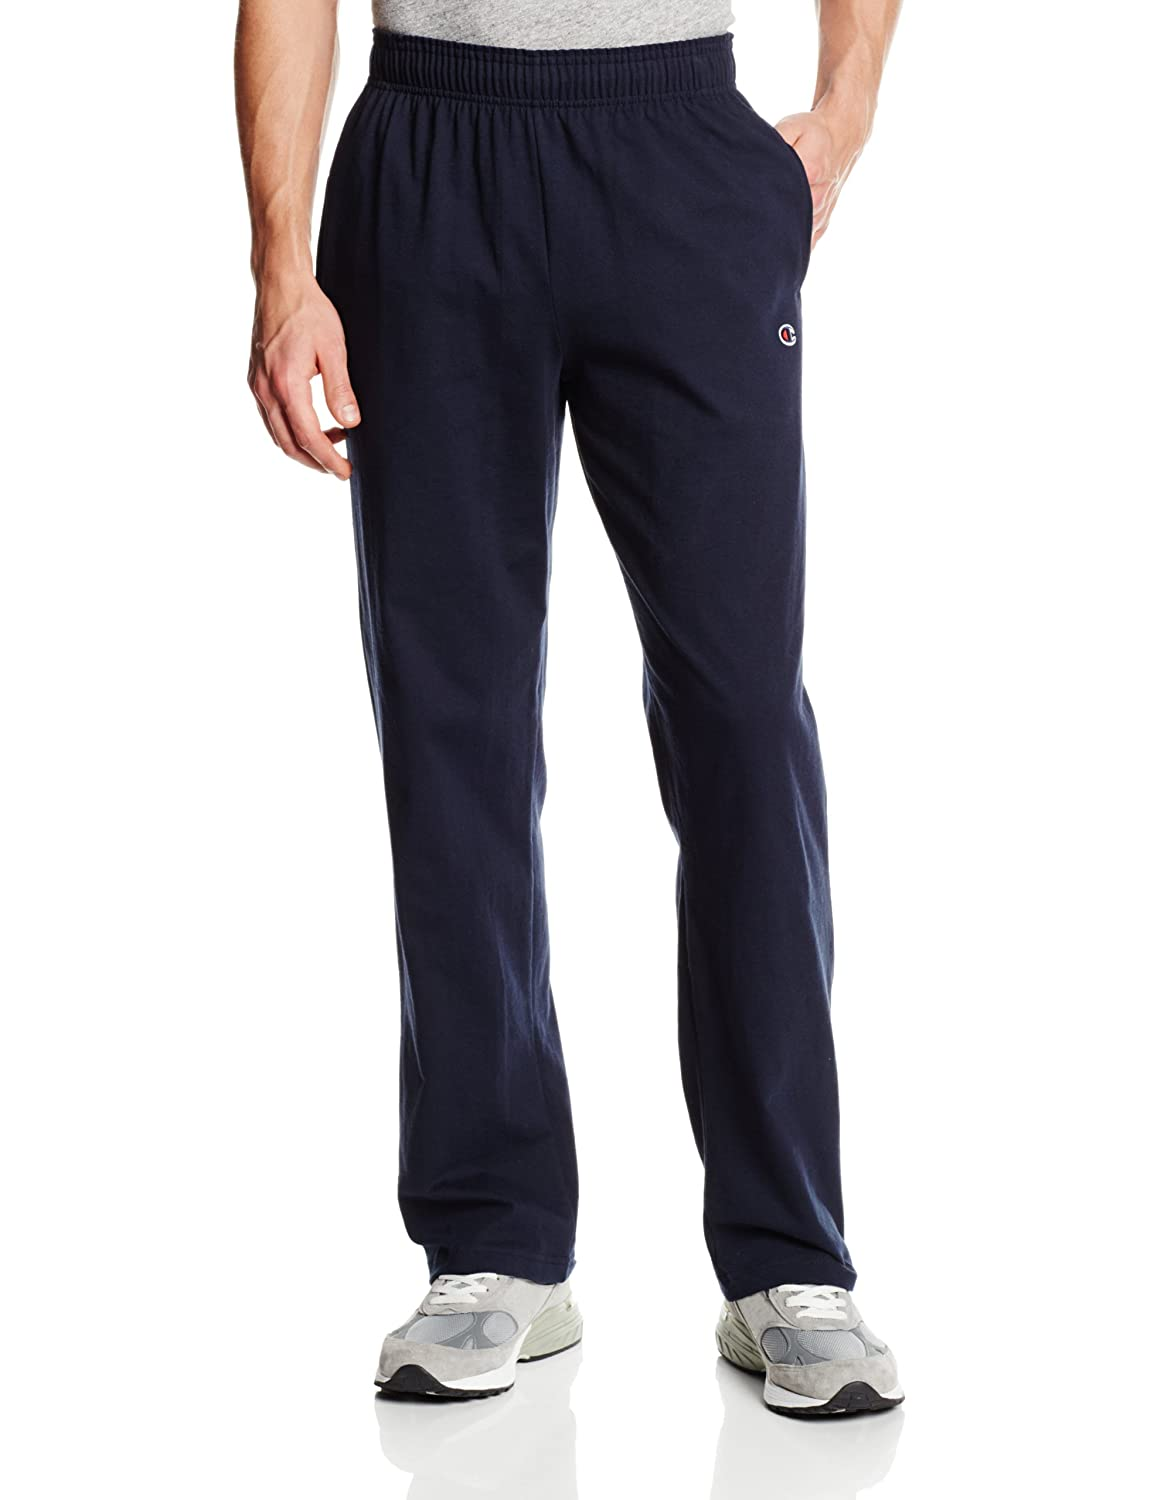 Champion Men's Open Bottom Light Weight Jersey pants